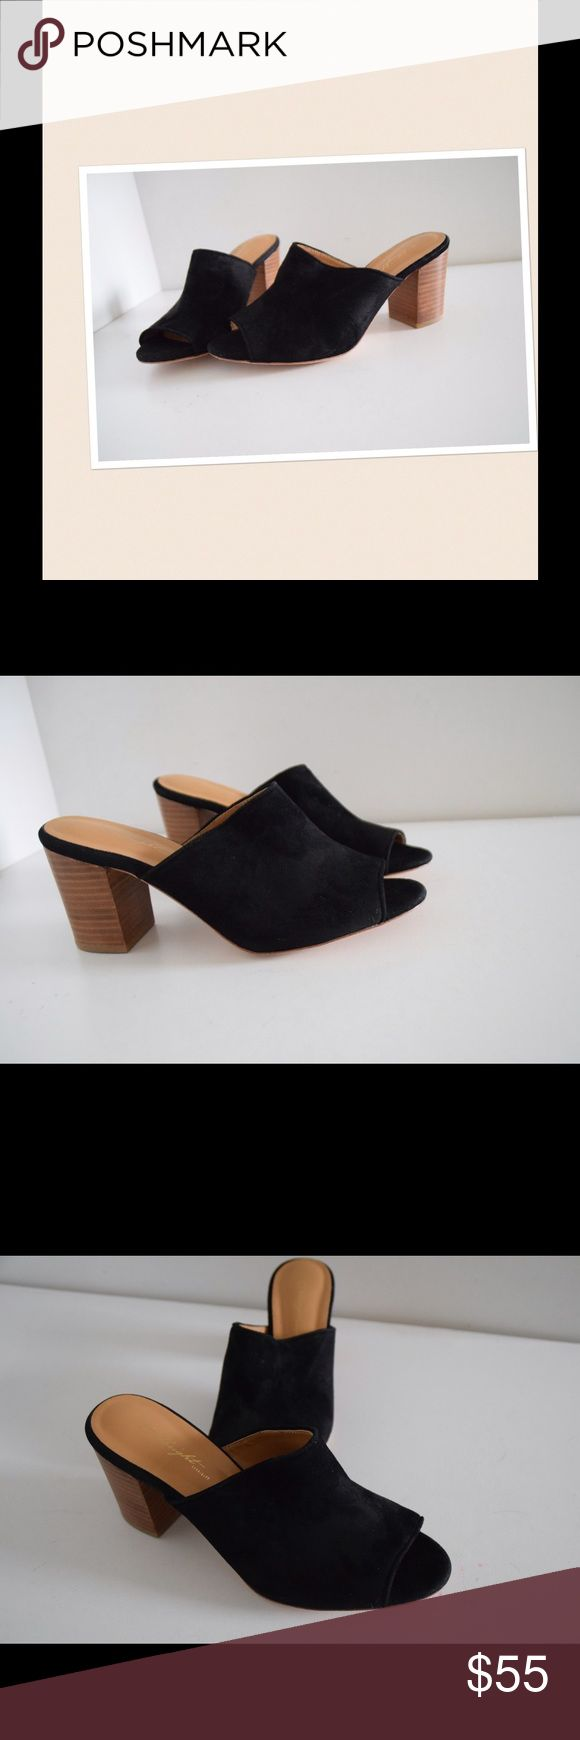 "NWOT anthropologie Miss Albright open toe mules NWOT Anthropologie Miss Albright open toe mules Suede upper. Black. Leather soles Size 8 1/2. Chunky wooden heels 3"" New never worn! Beautiful shoes! Anthropologie Shoes Mules & Clogs"